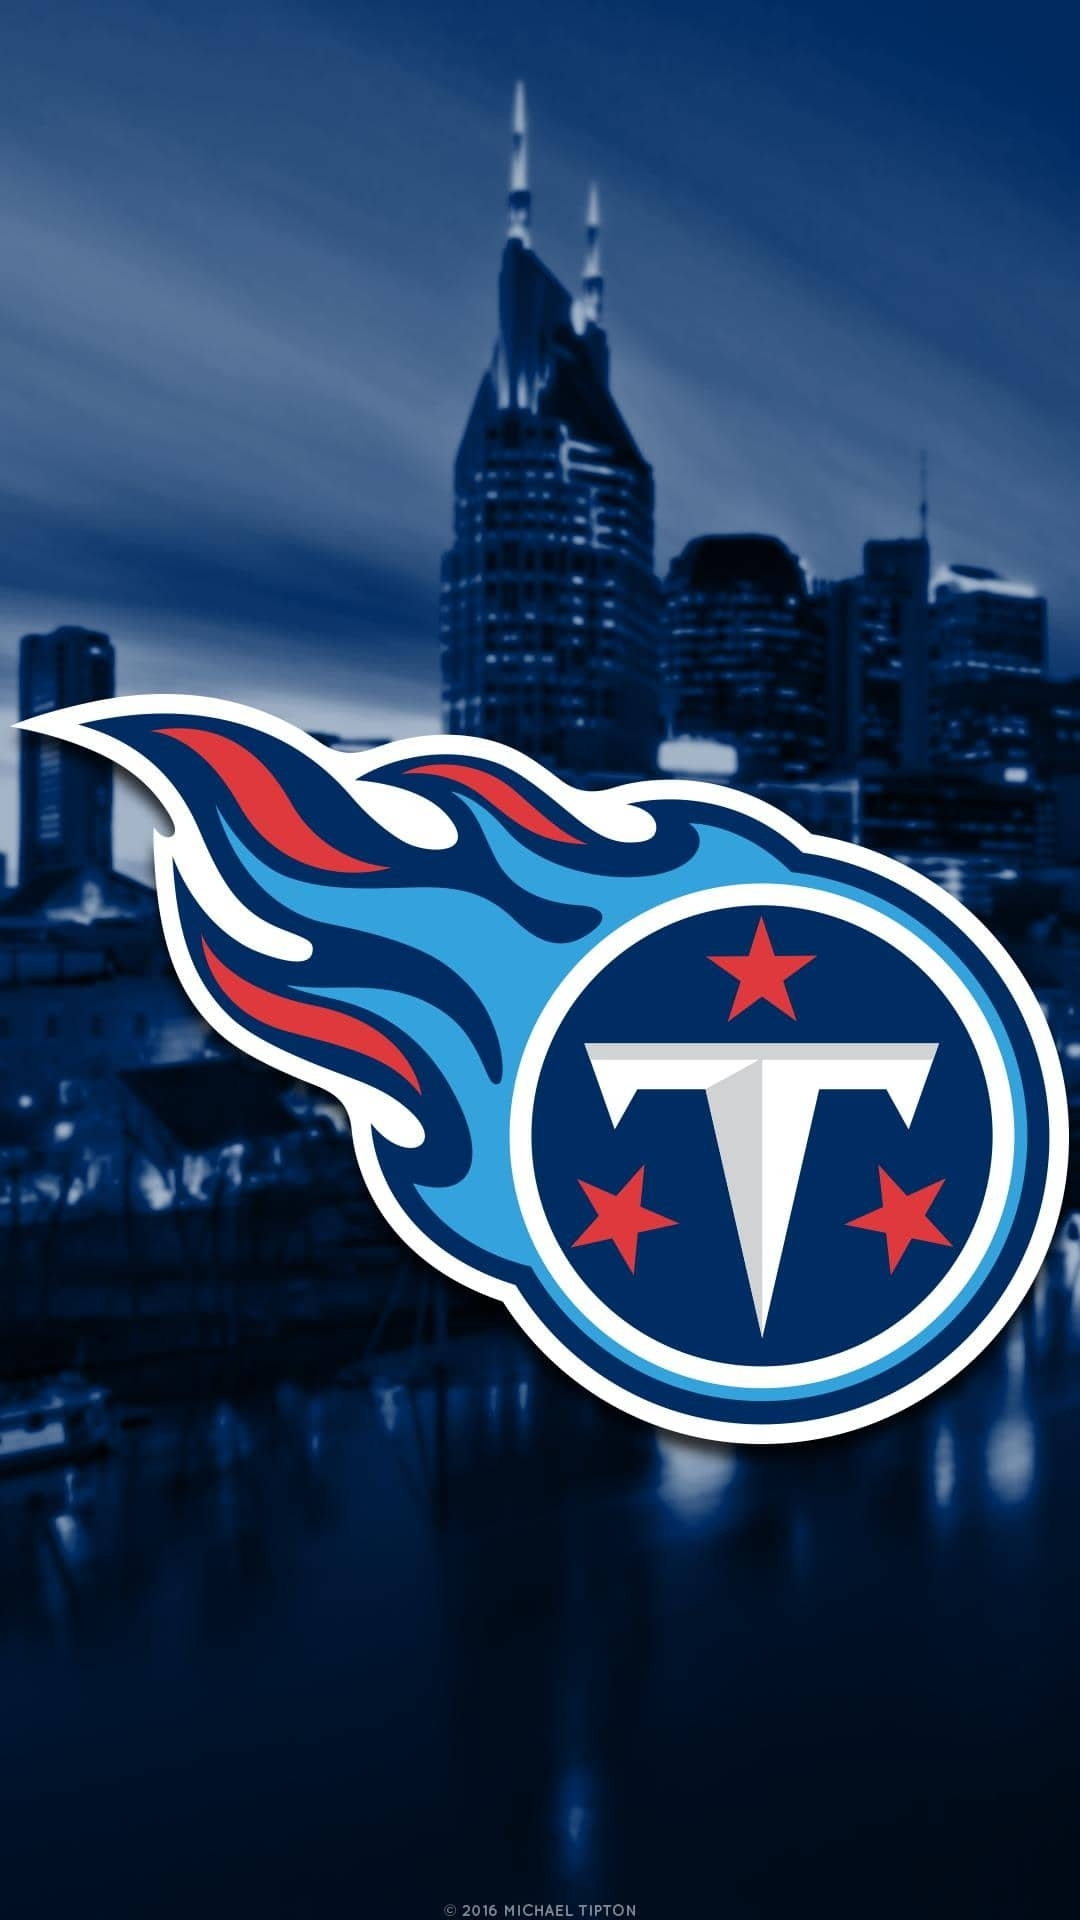 tennessee titans wallpaper for android | mobile wallpapers